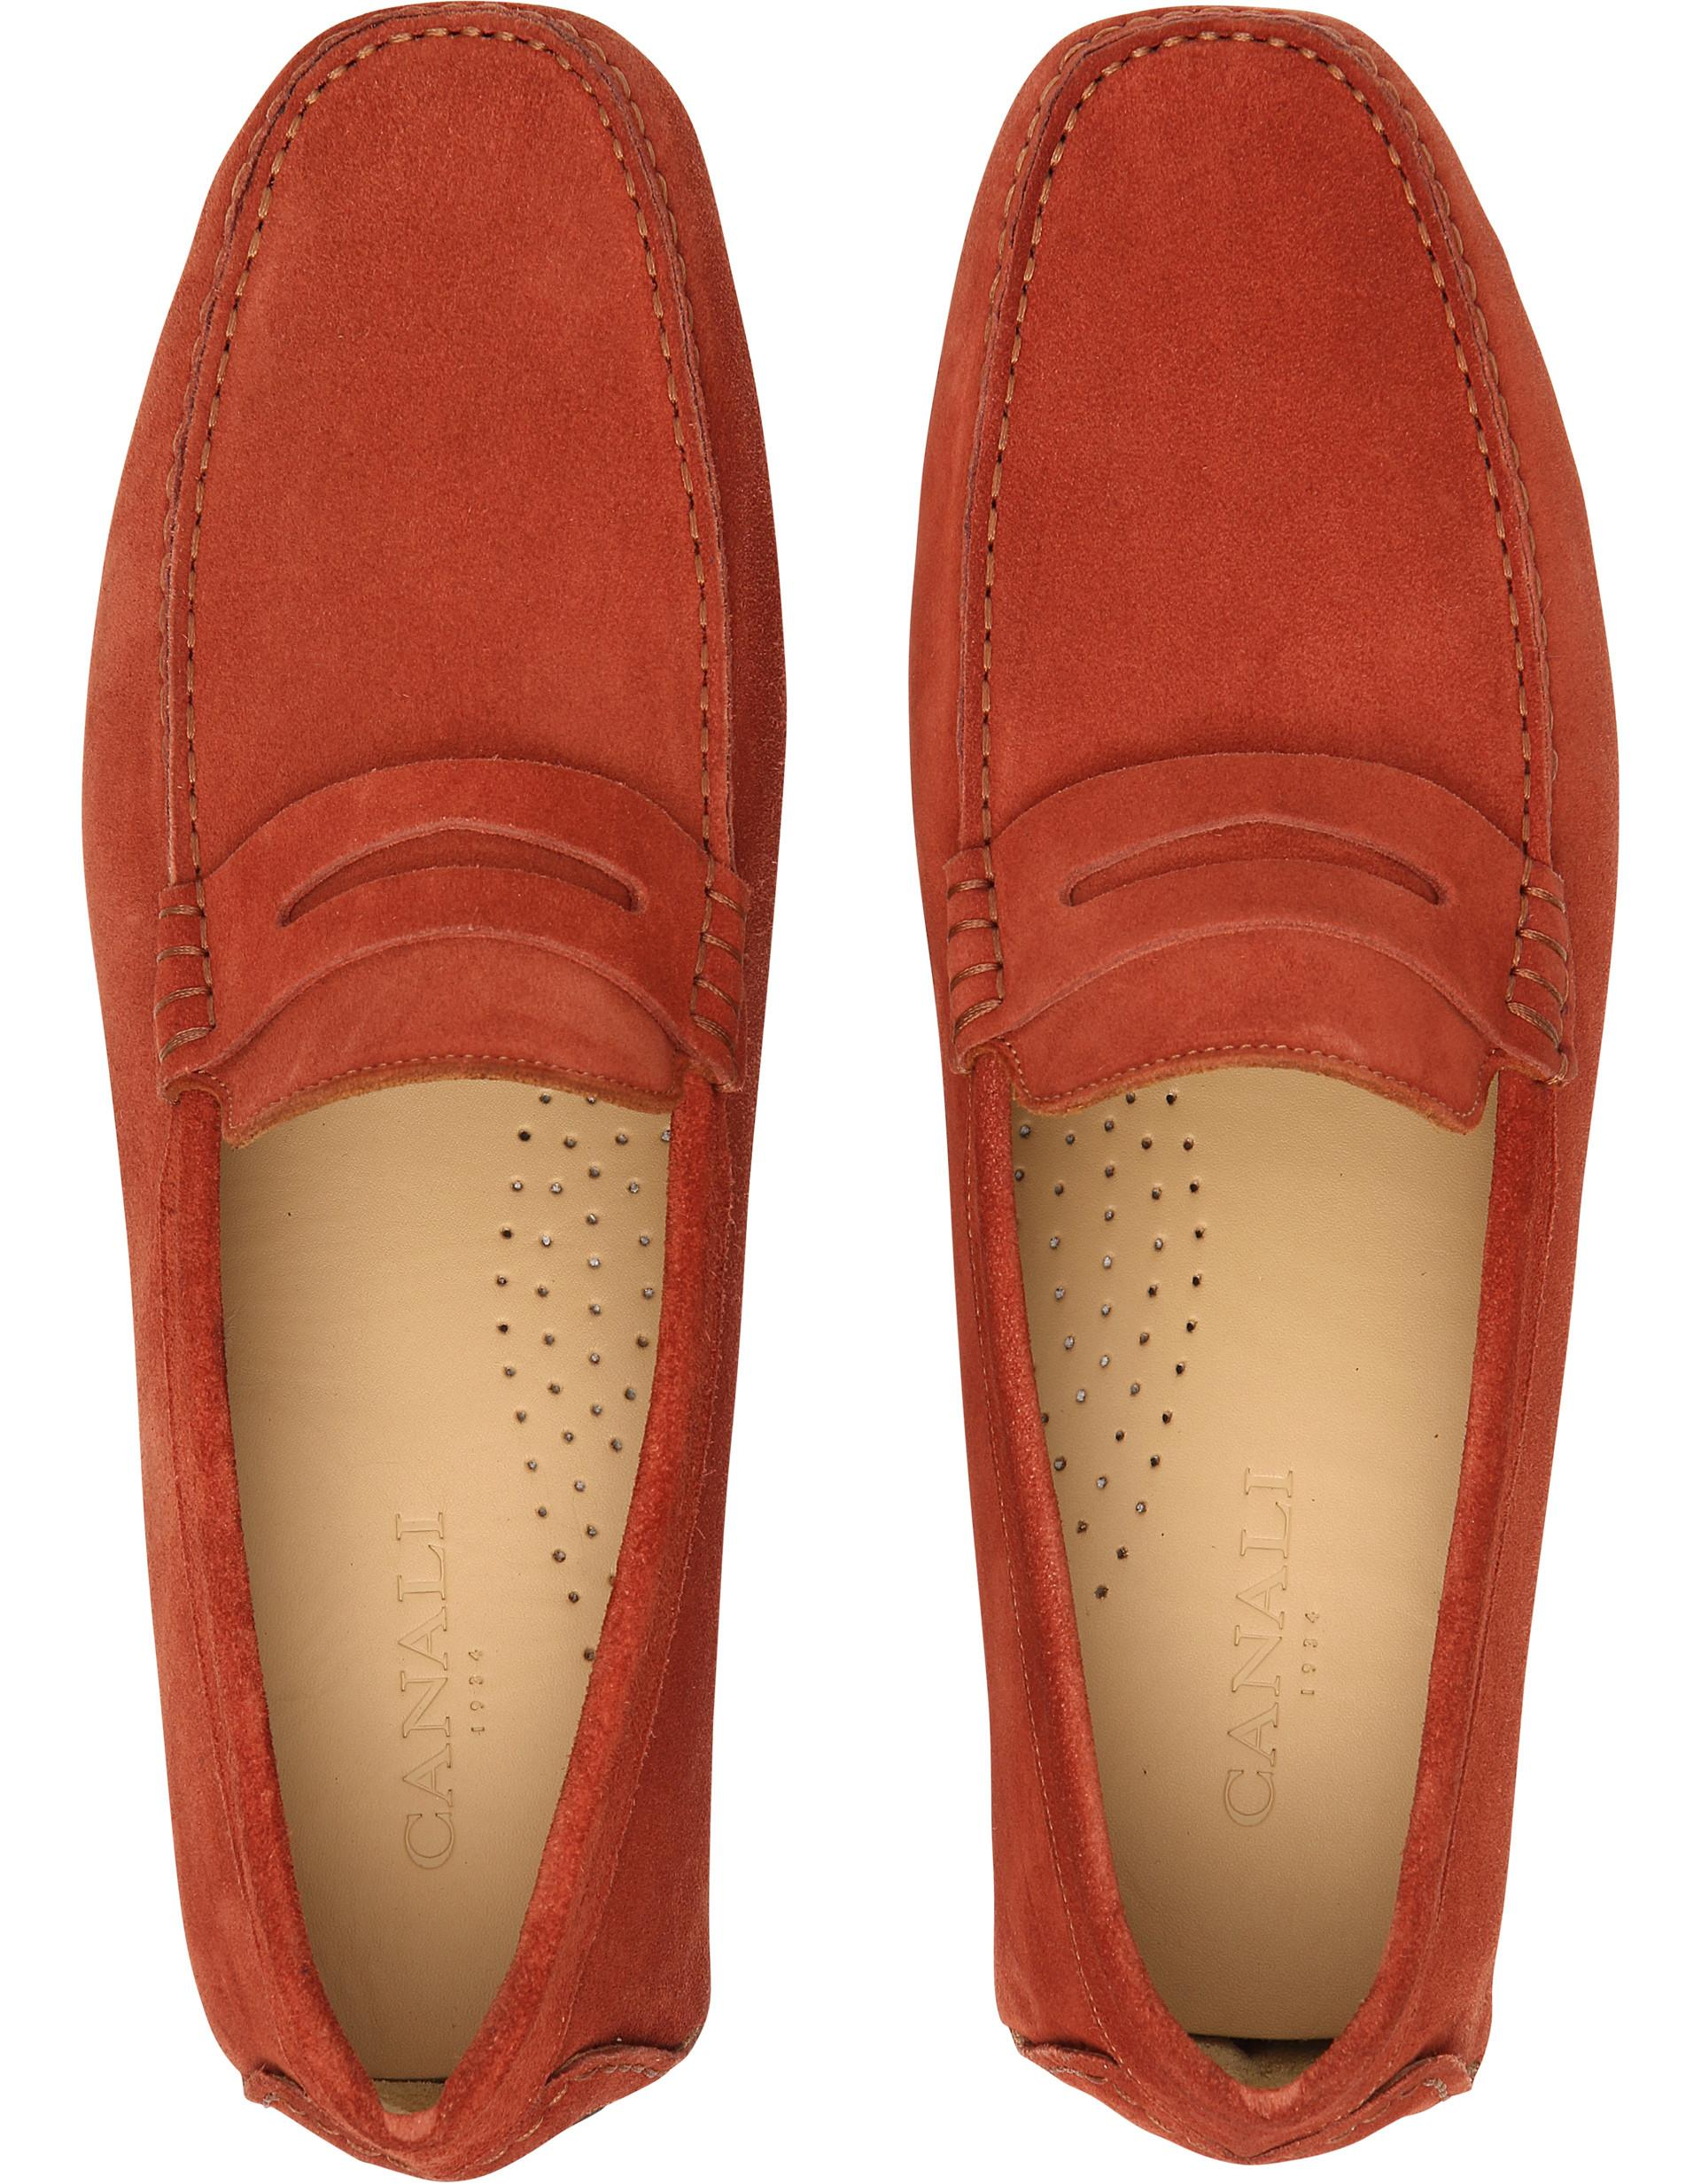 Canali Red Suede Penny Driving Loafers for Men - Lyst